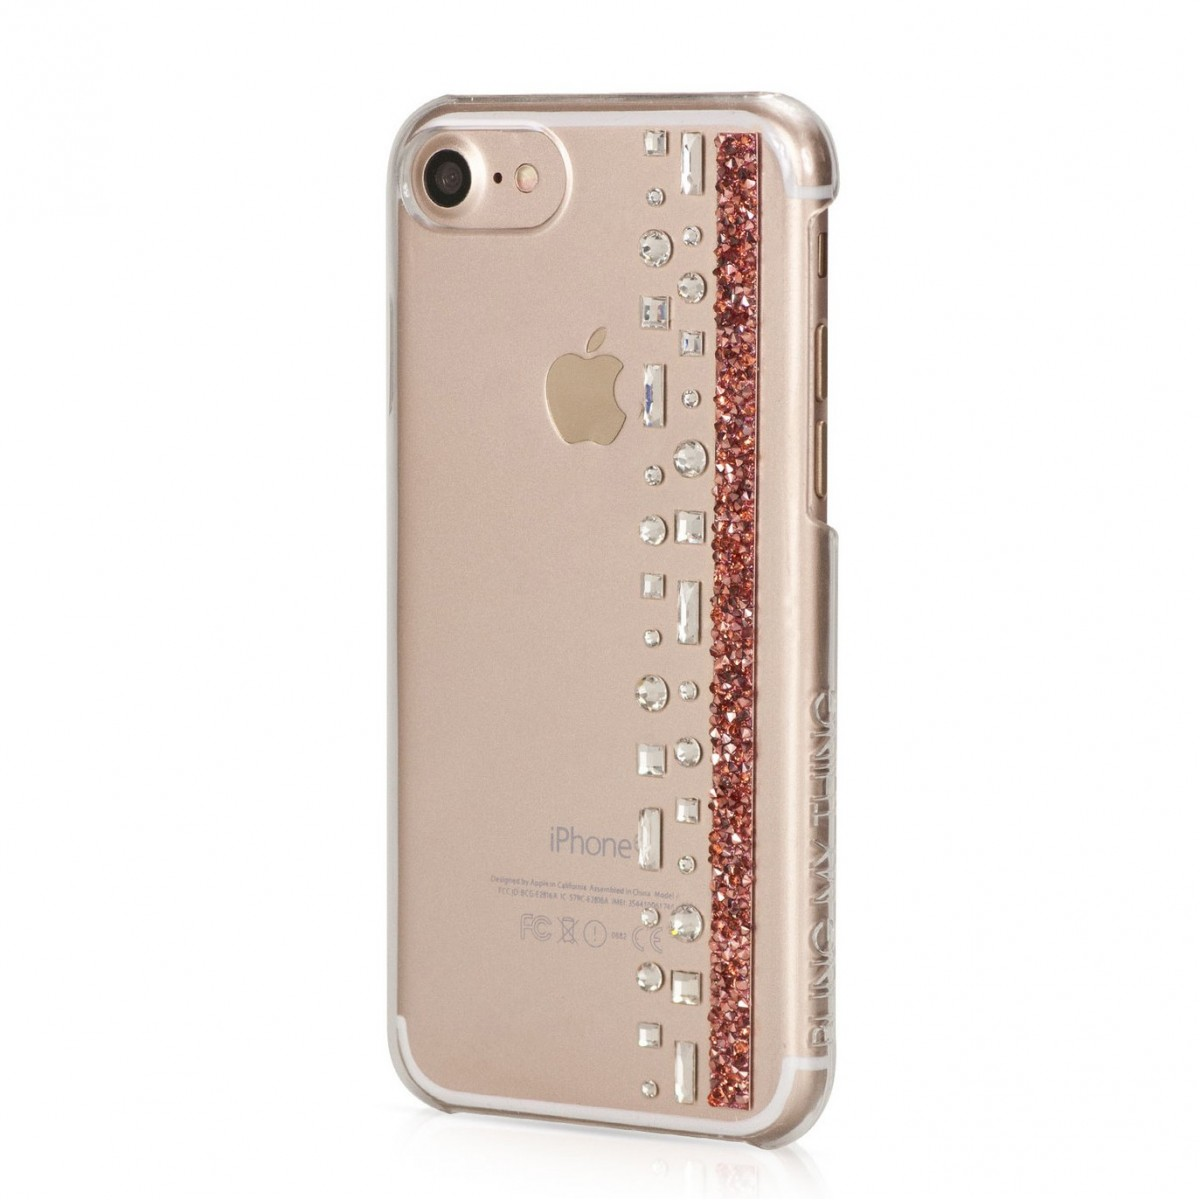 Coque iPhone 7 Hermitage Rose Gold Strass Cristal et Rose Swarovski - Bling My Thing